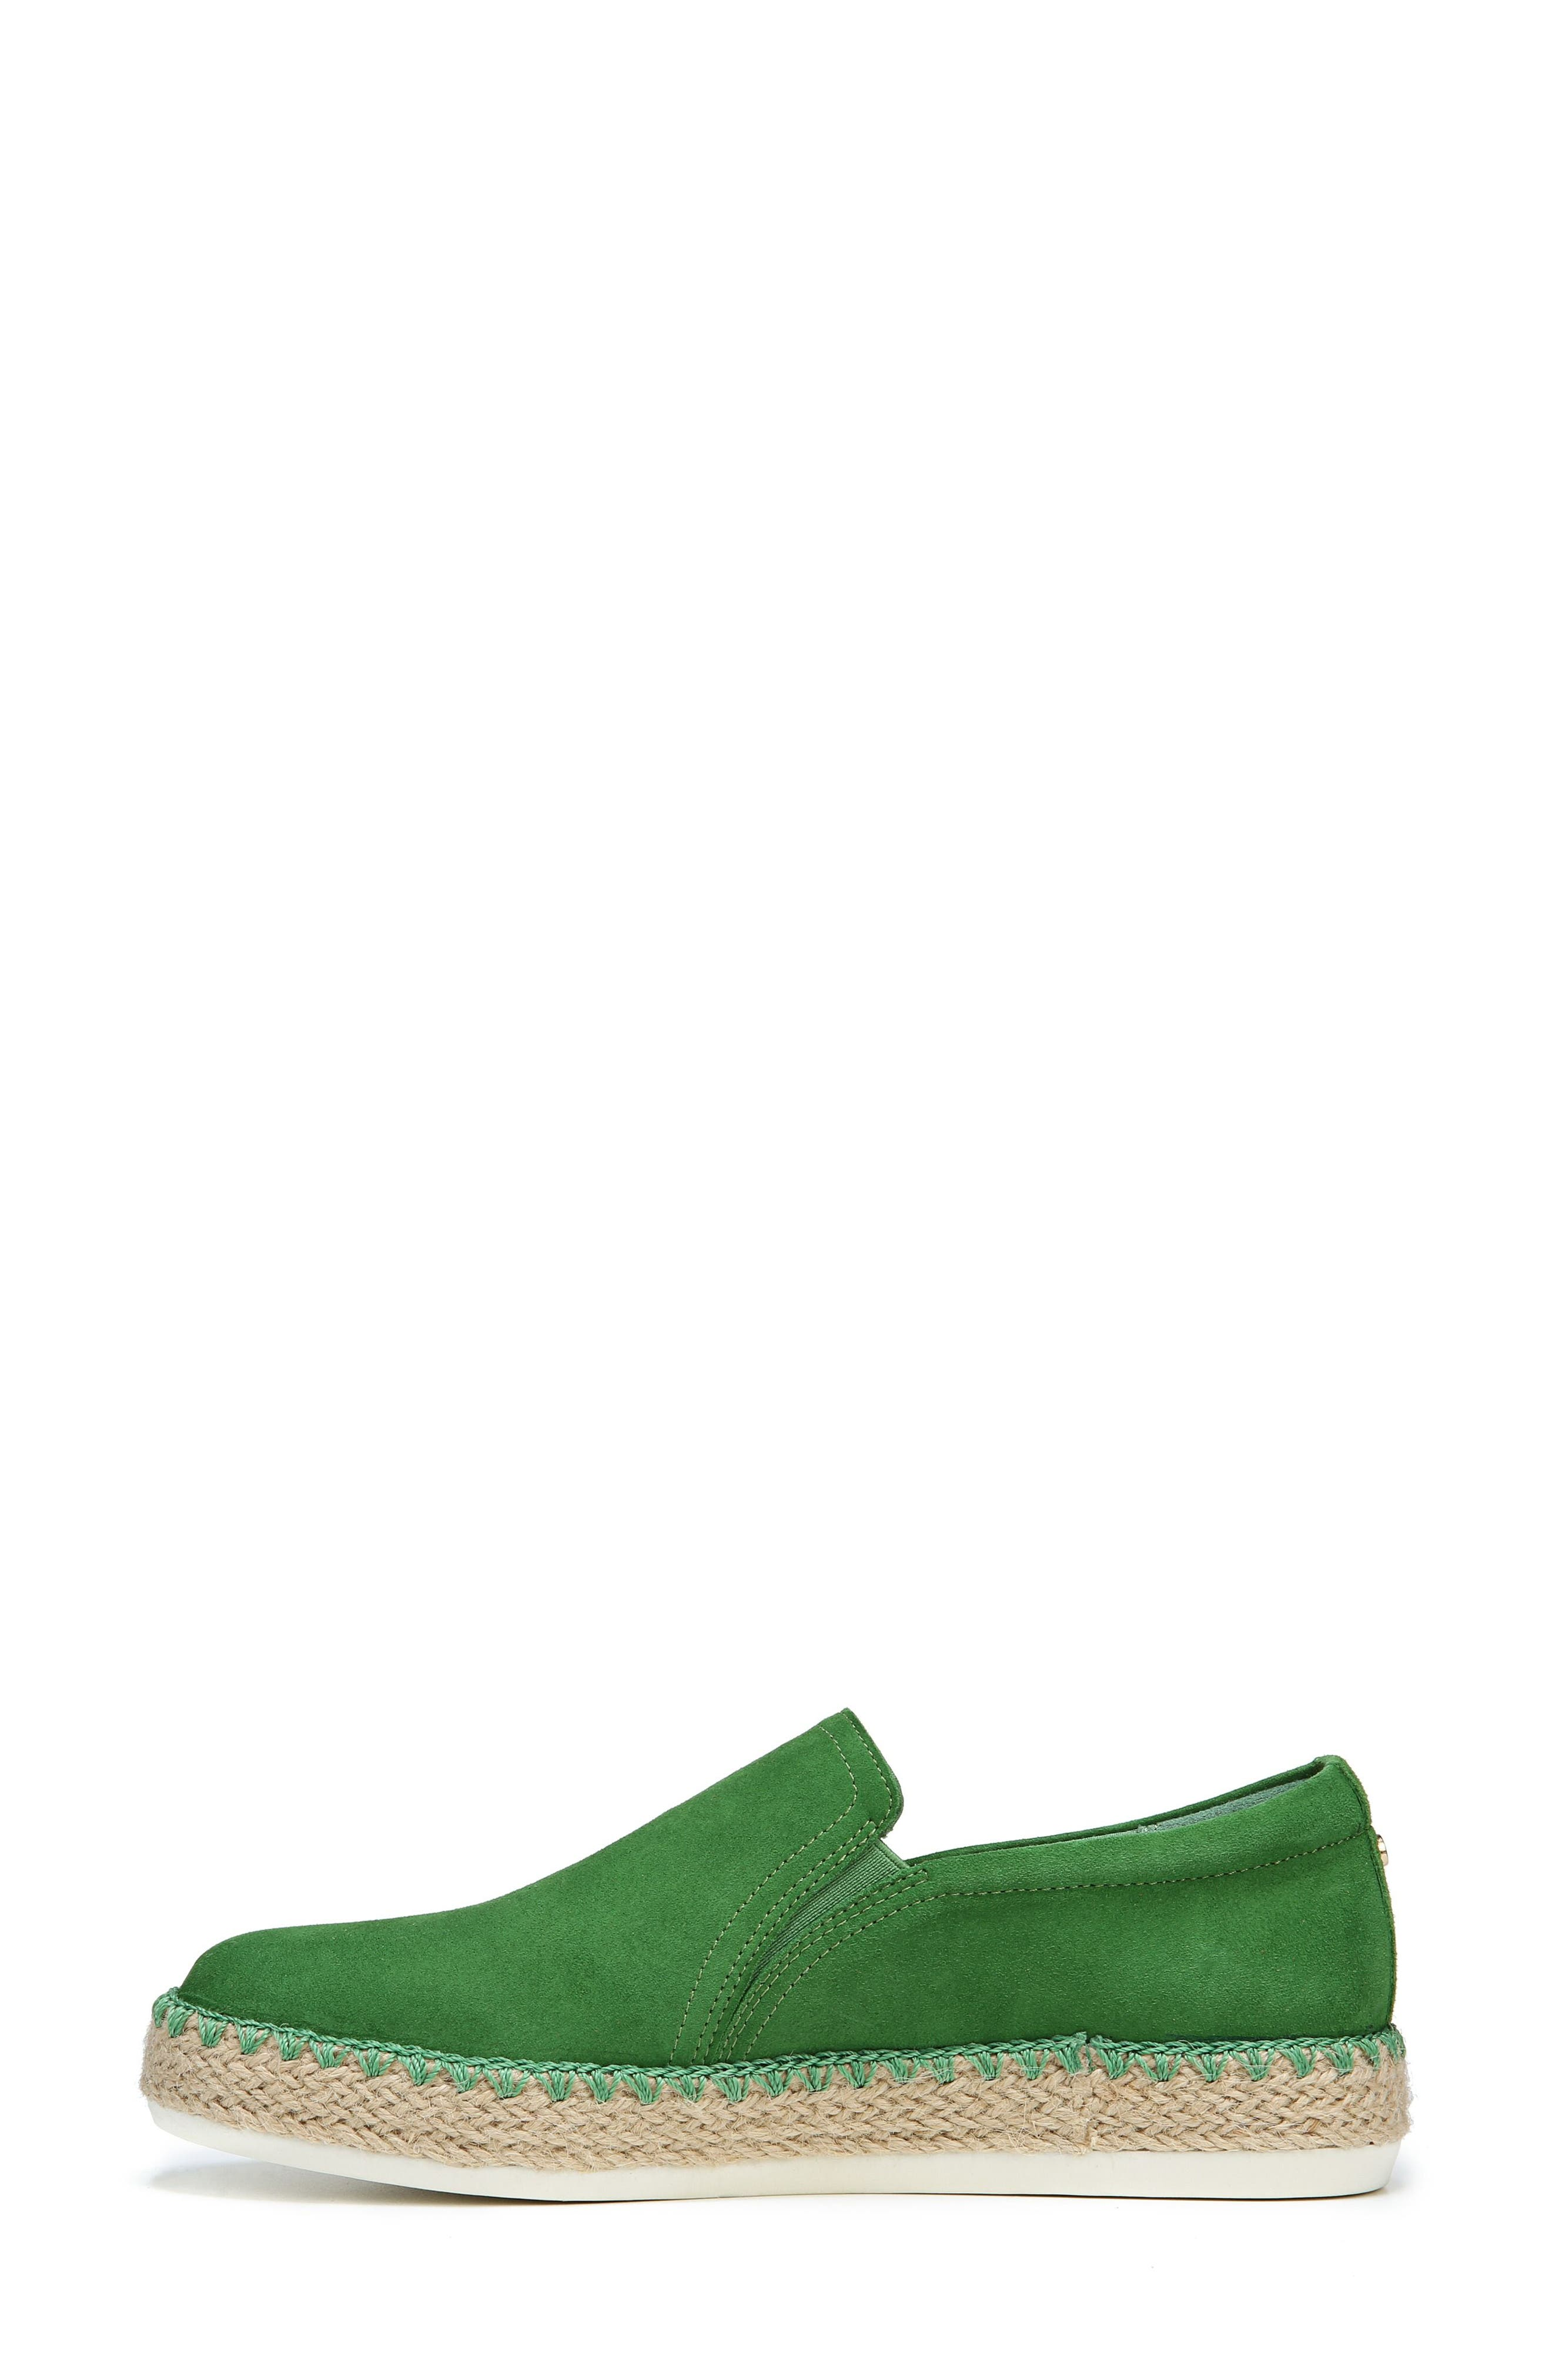 Sunnie Slip-On Sneaker,                             Alternate thumbnail 3, color,                             GREEN SUEDE